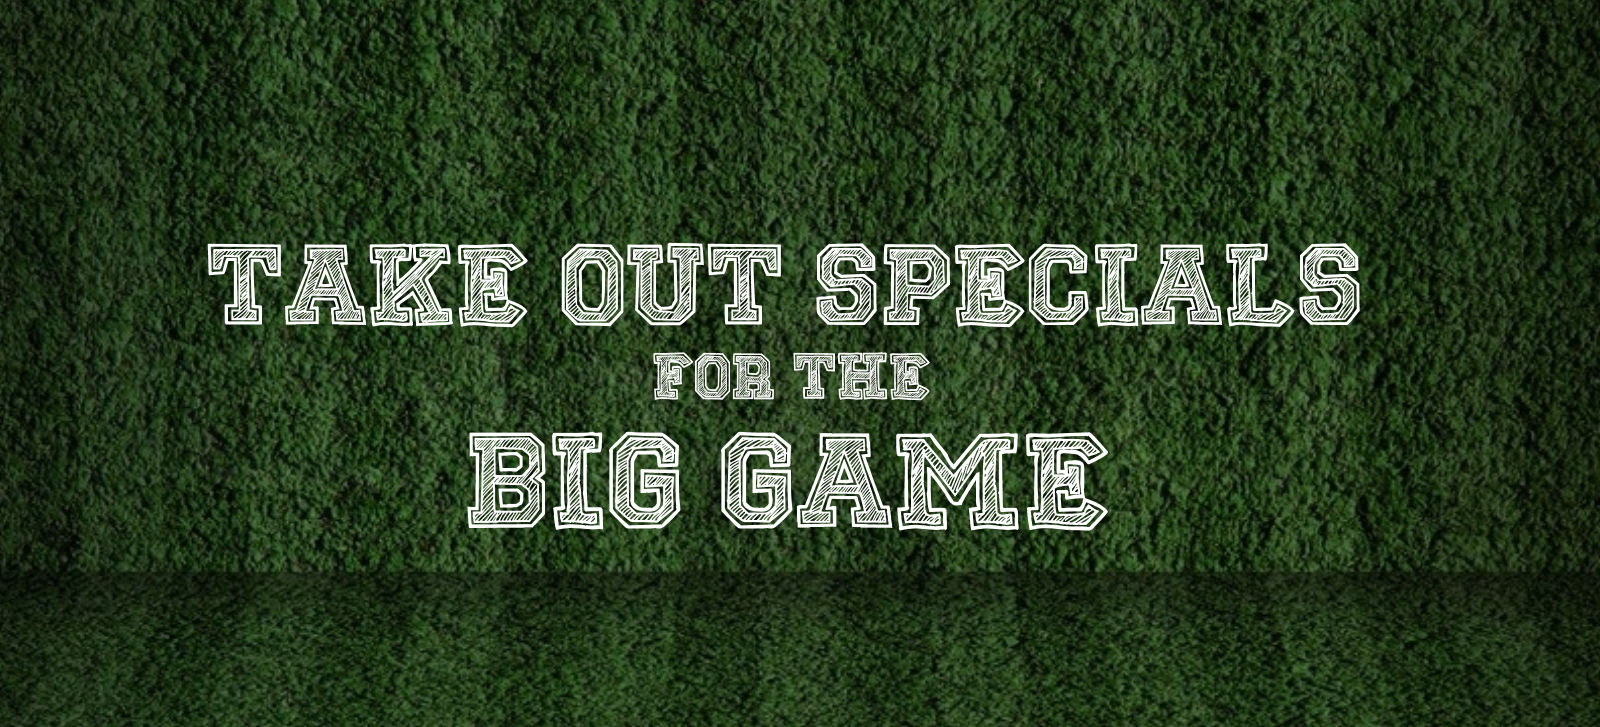 Take Out Specials for the Big Game